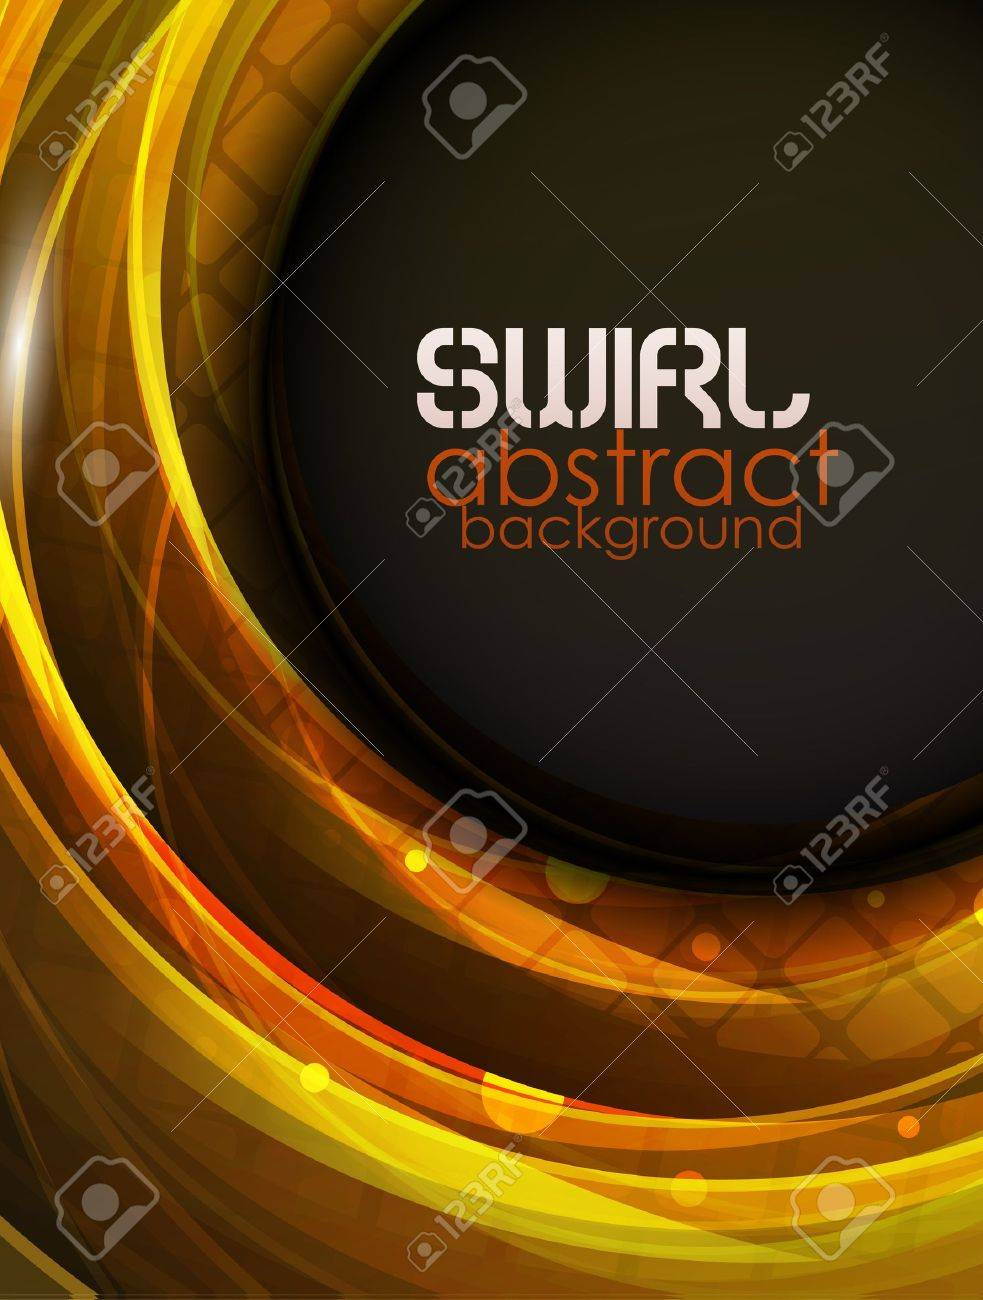 Swirl abstract background Stock Vector - 10683745